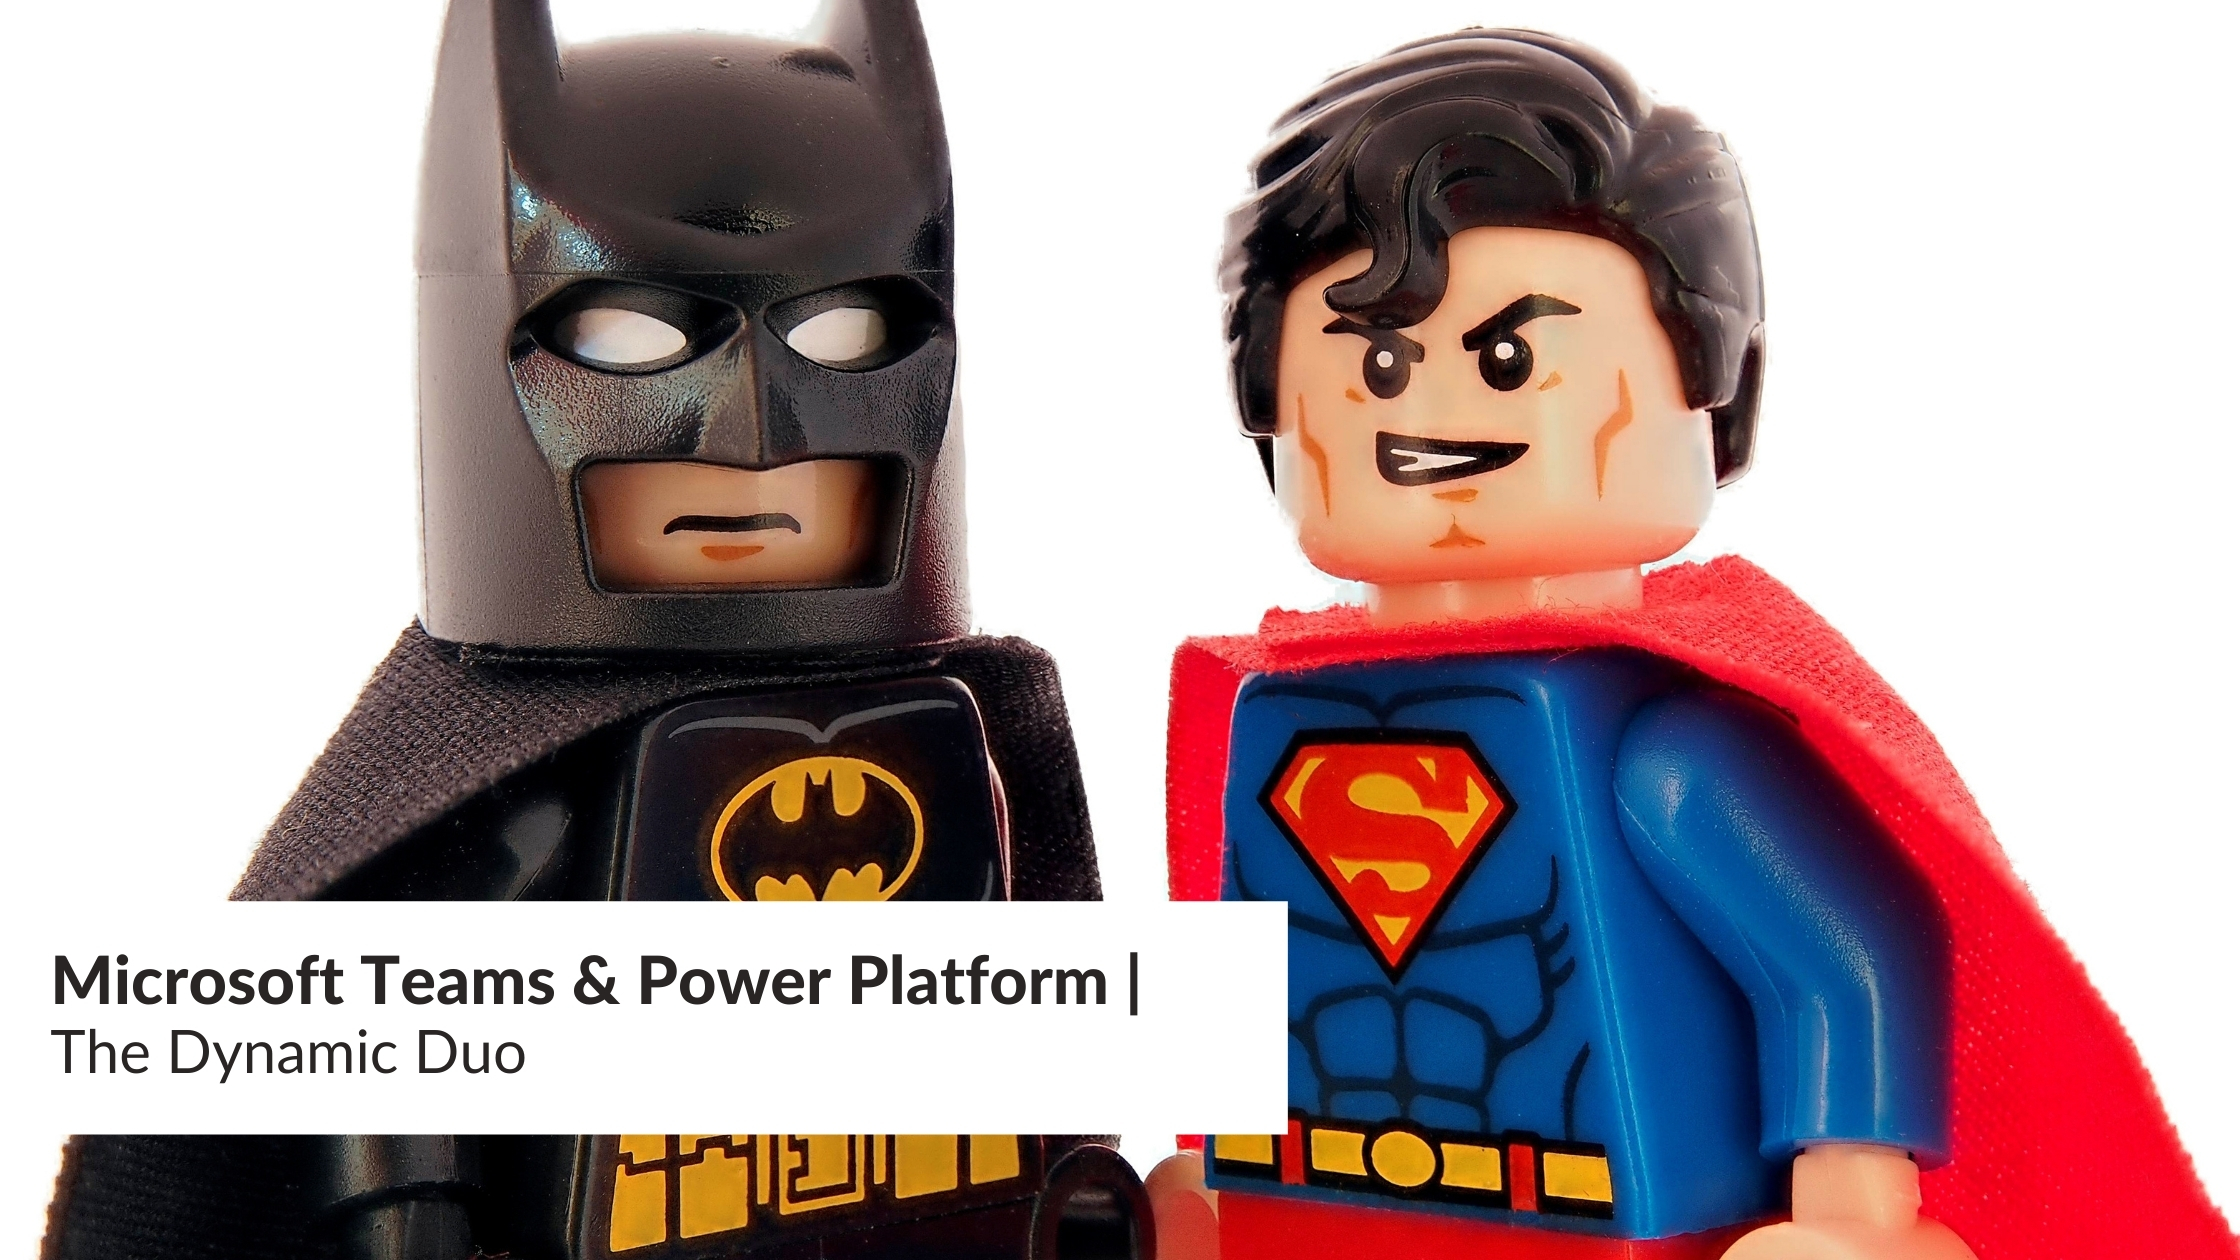 Microsoft Teams & Power Platform | The Dynamic Duo